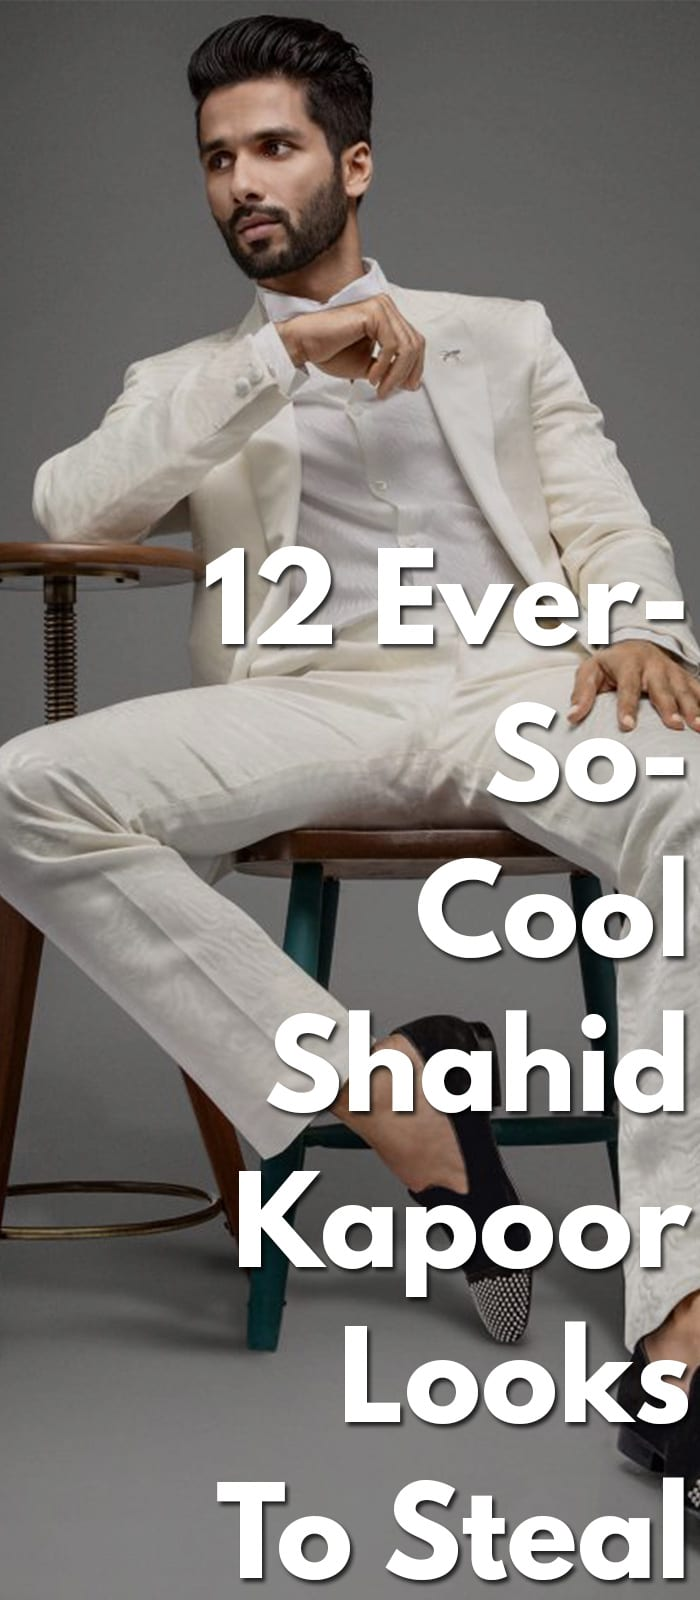 12 Ever-So-Cool Shahid Kapoor Looks To Steal.